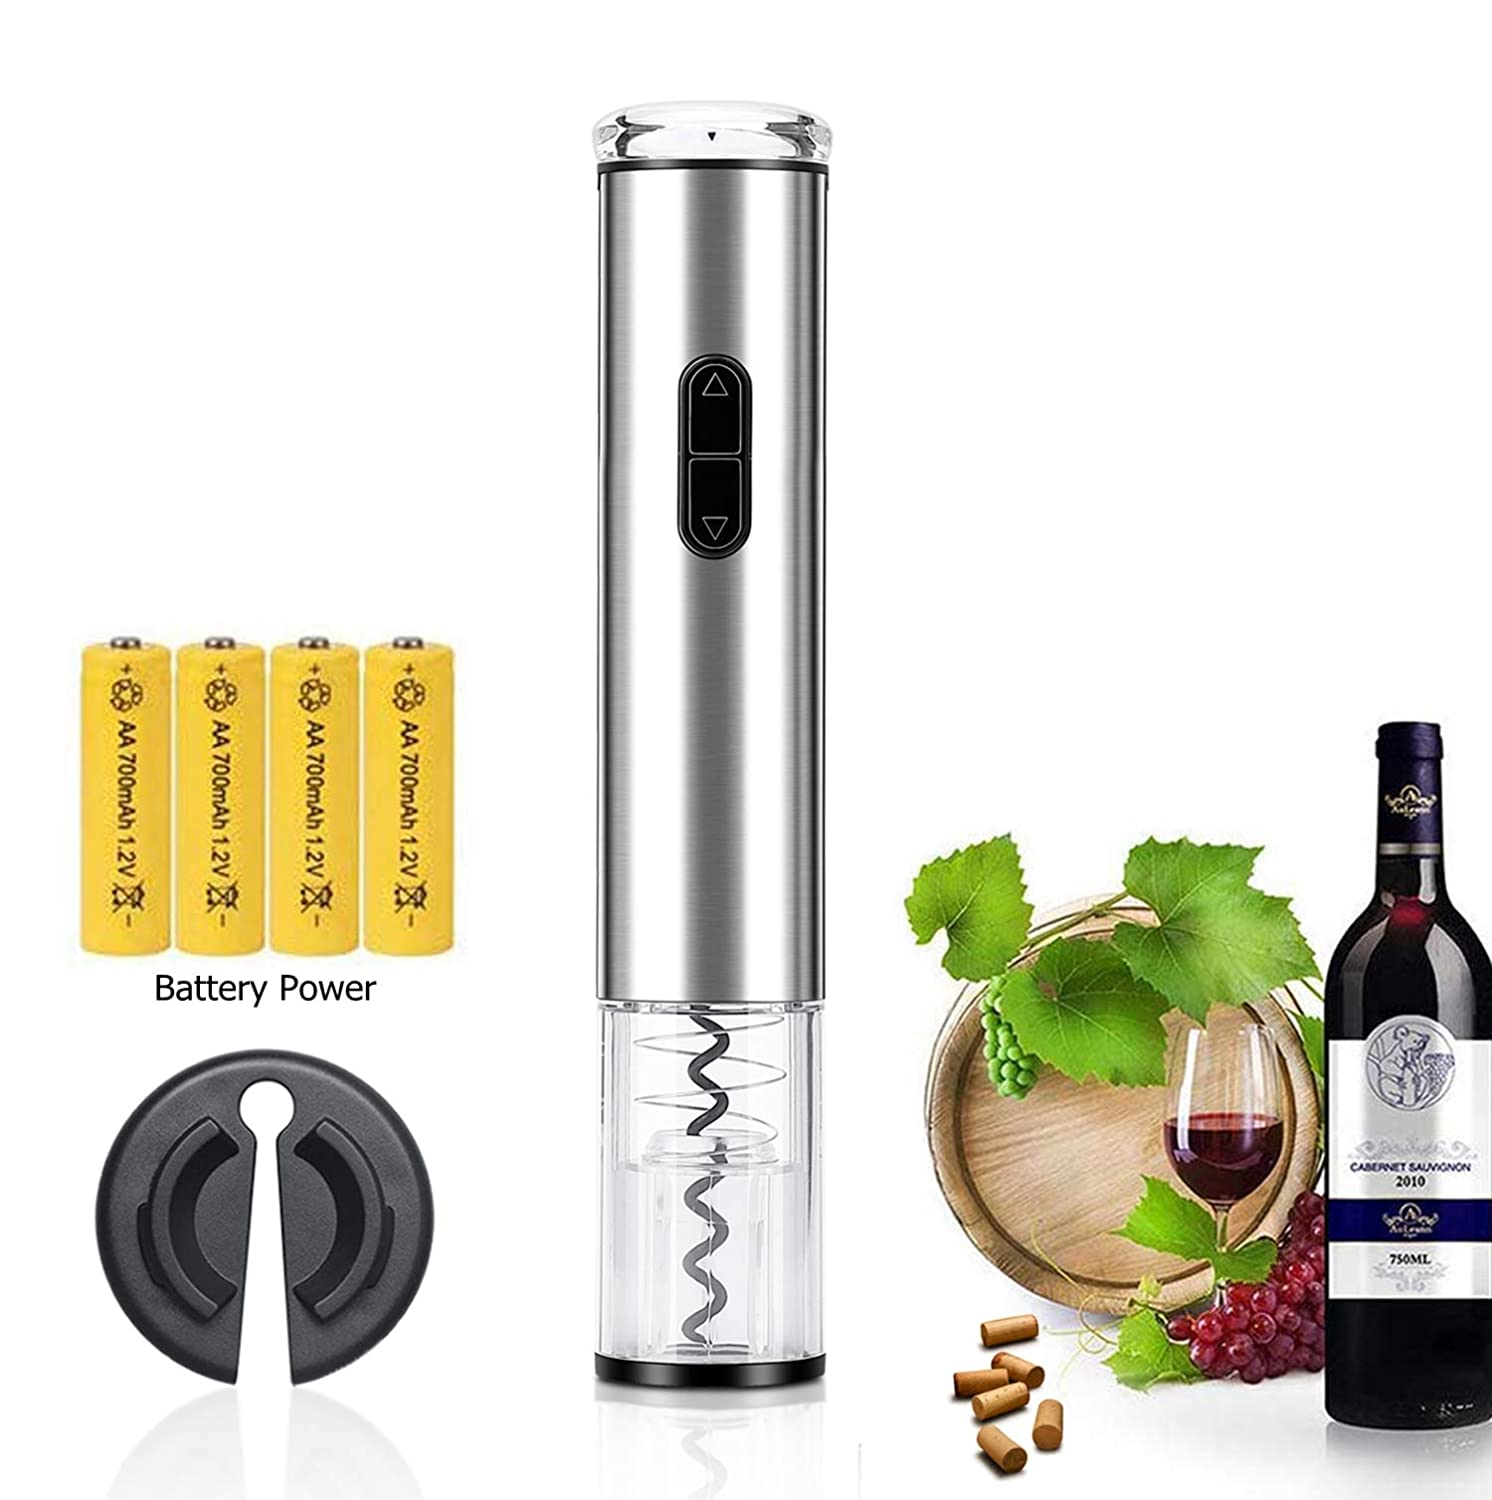 Electric Wine Opener, Automatic Wine Opener Corkscrew Battery Operated Bottle Openers with Foil Cutter Stainless Steel